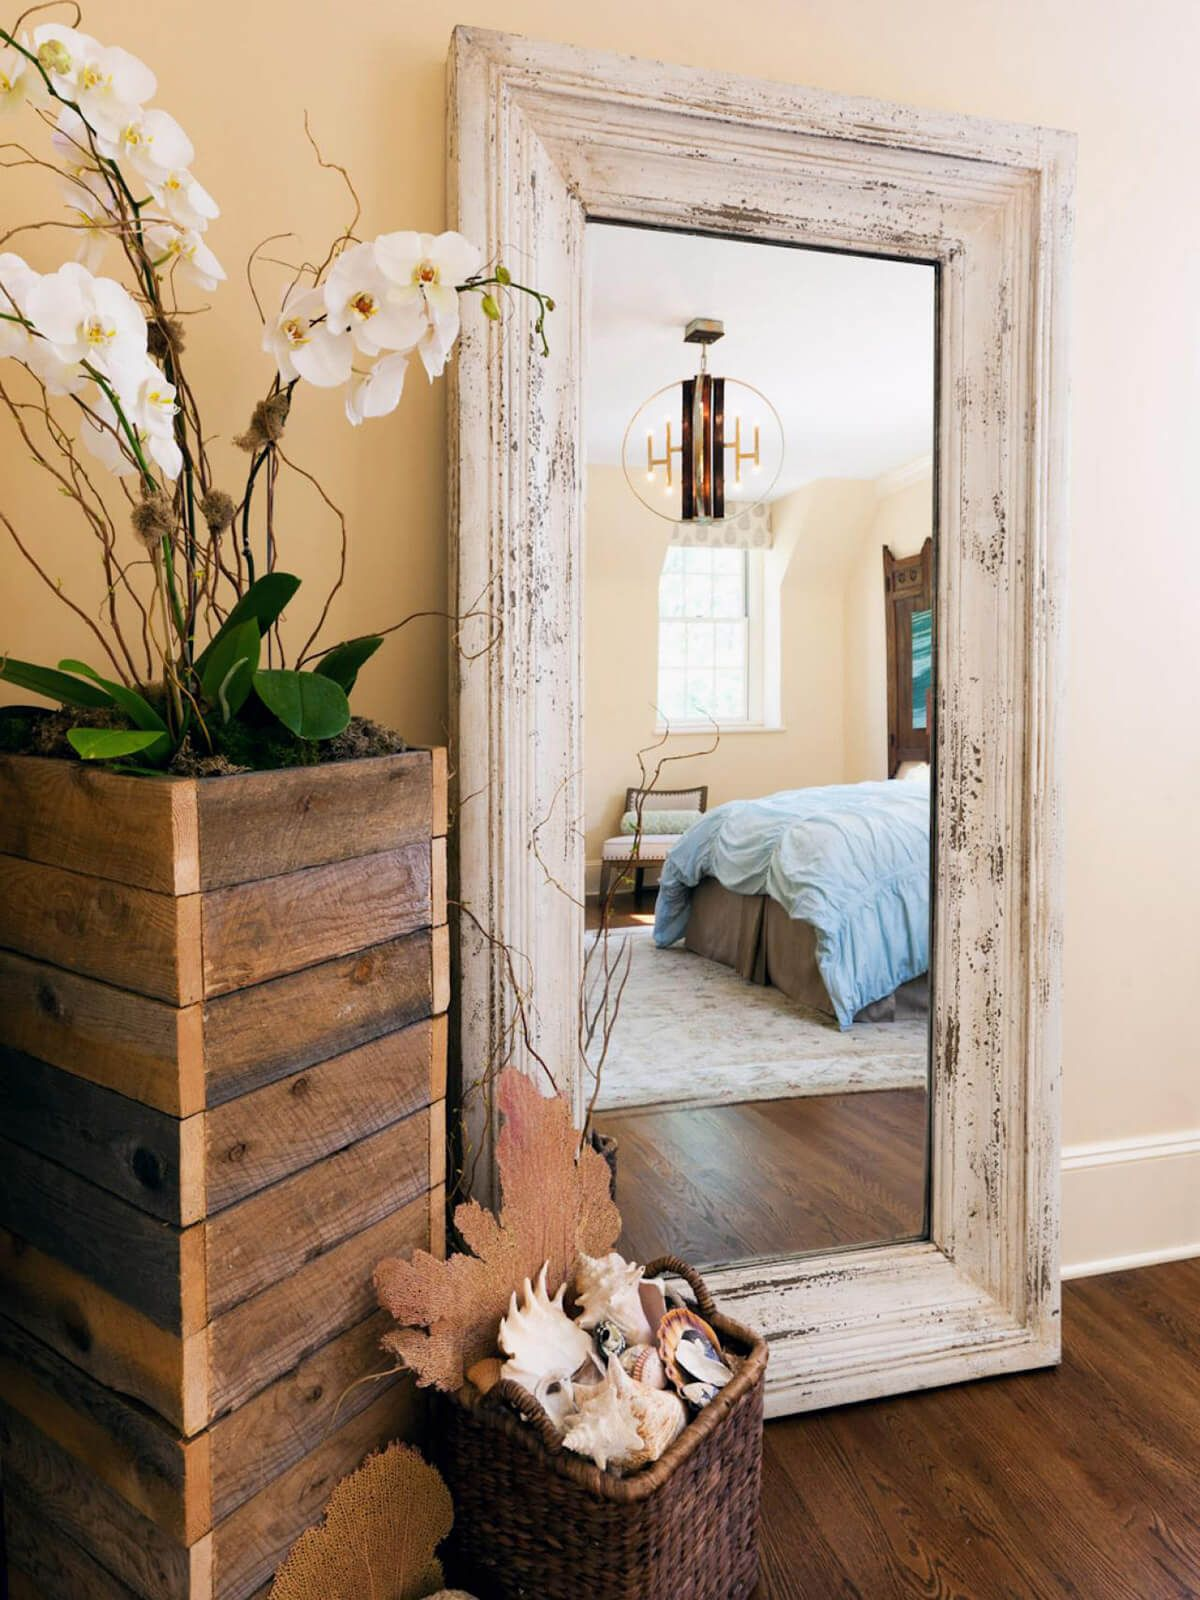 33 Mirror Decoration Ideas To Brighten Your Home Decor Rustic Mirrors Eclectic Bedroom